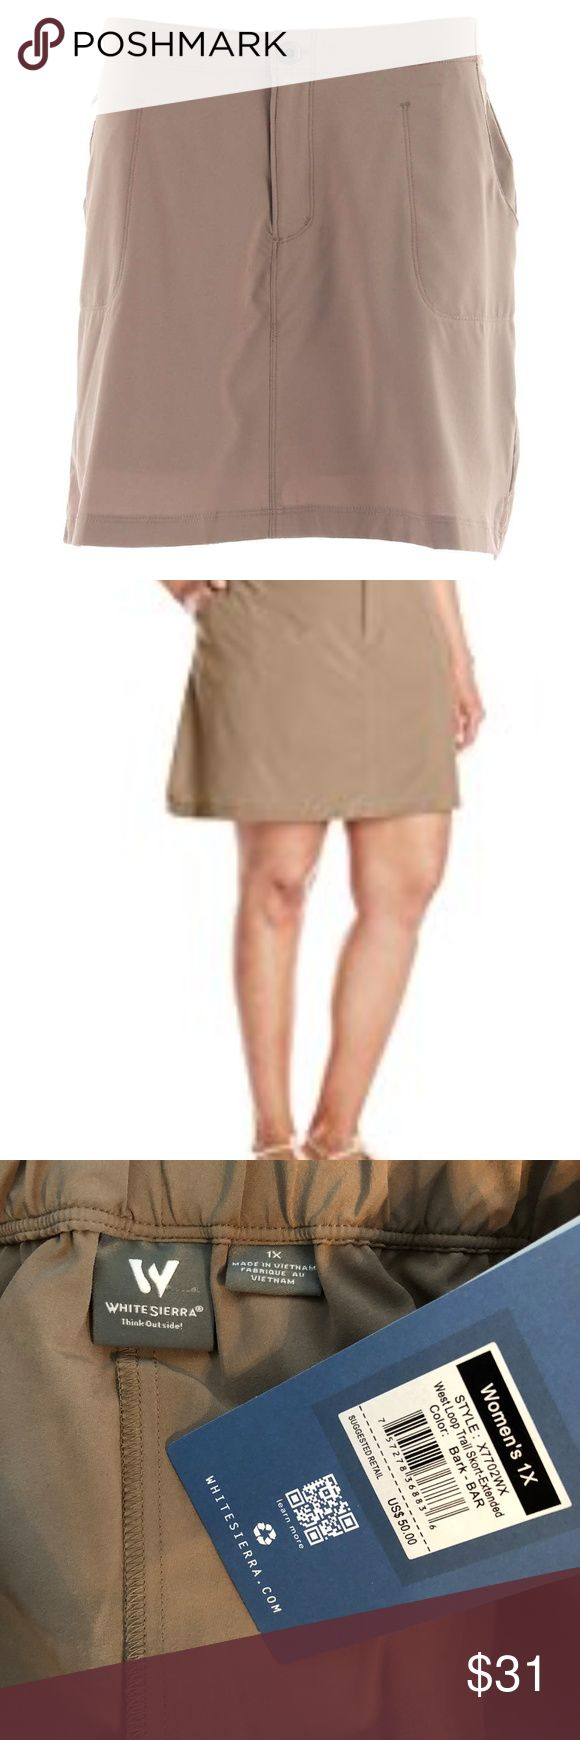 "White Sierra West Loop Trail Skort 1X size 16 Tan White Sierra Women's West Loop Trail Skort features a feminine touch added to the practicality of your favorite hiking shorts. The elastic in the back waist gives you a custom fit that rests below the natural waist and the attached interior shorts give you the added coverage a skirt can't provide. Soft 92/8 polyester/elastane poplin weave provides sun protection. Zippered hip pocket. Length: 17"". Inseam: 5.5"".  Waist 33.5"" (also has elastic…"